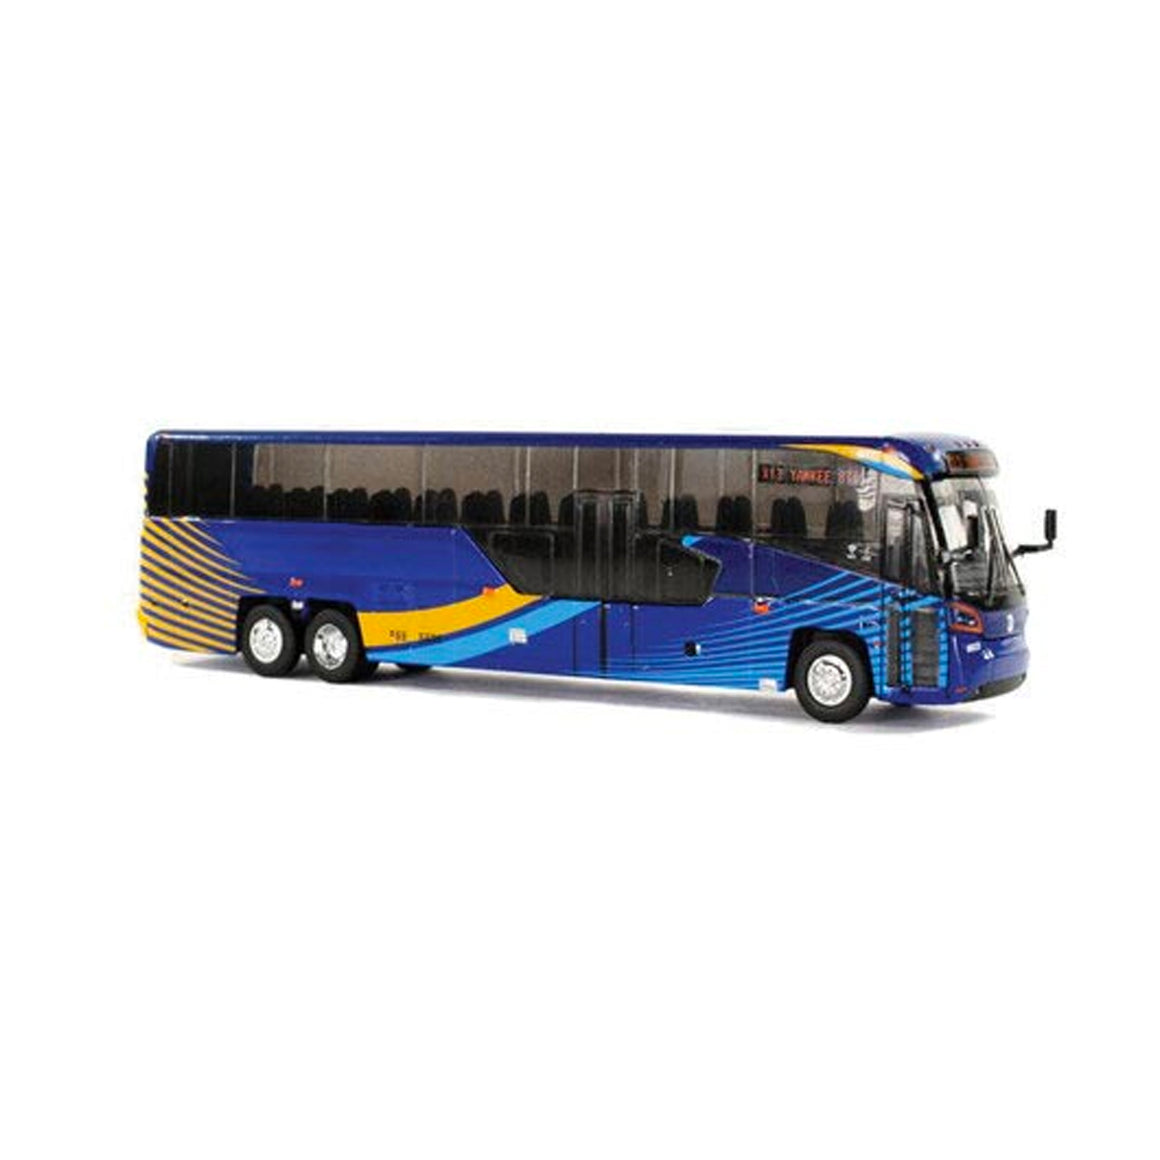 HO Scale: MCI D45 Commuter Coach - New York City Transit 'Midtown'